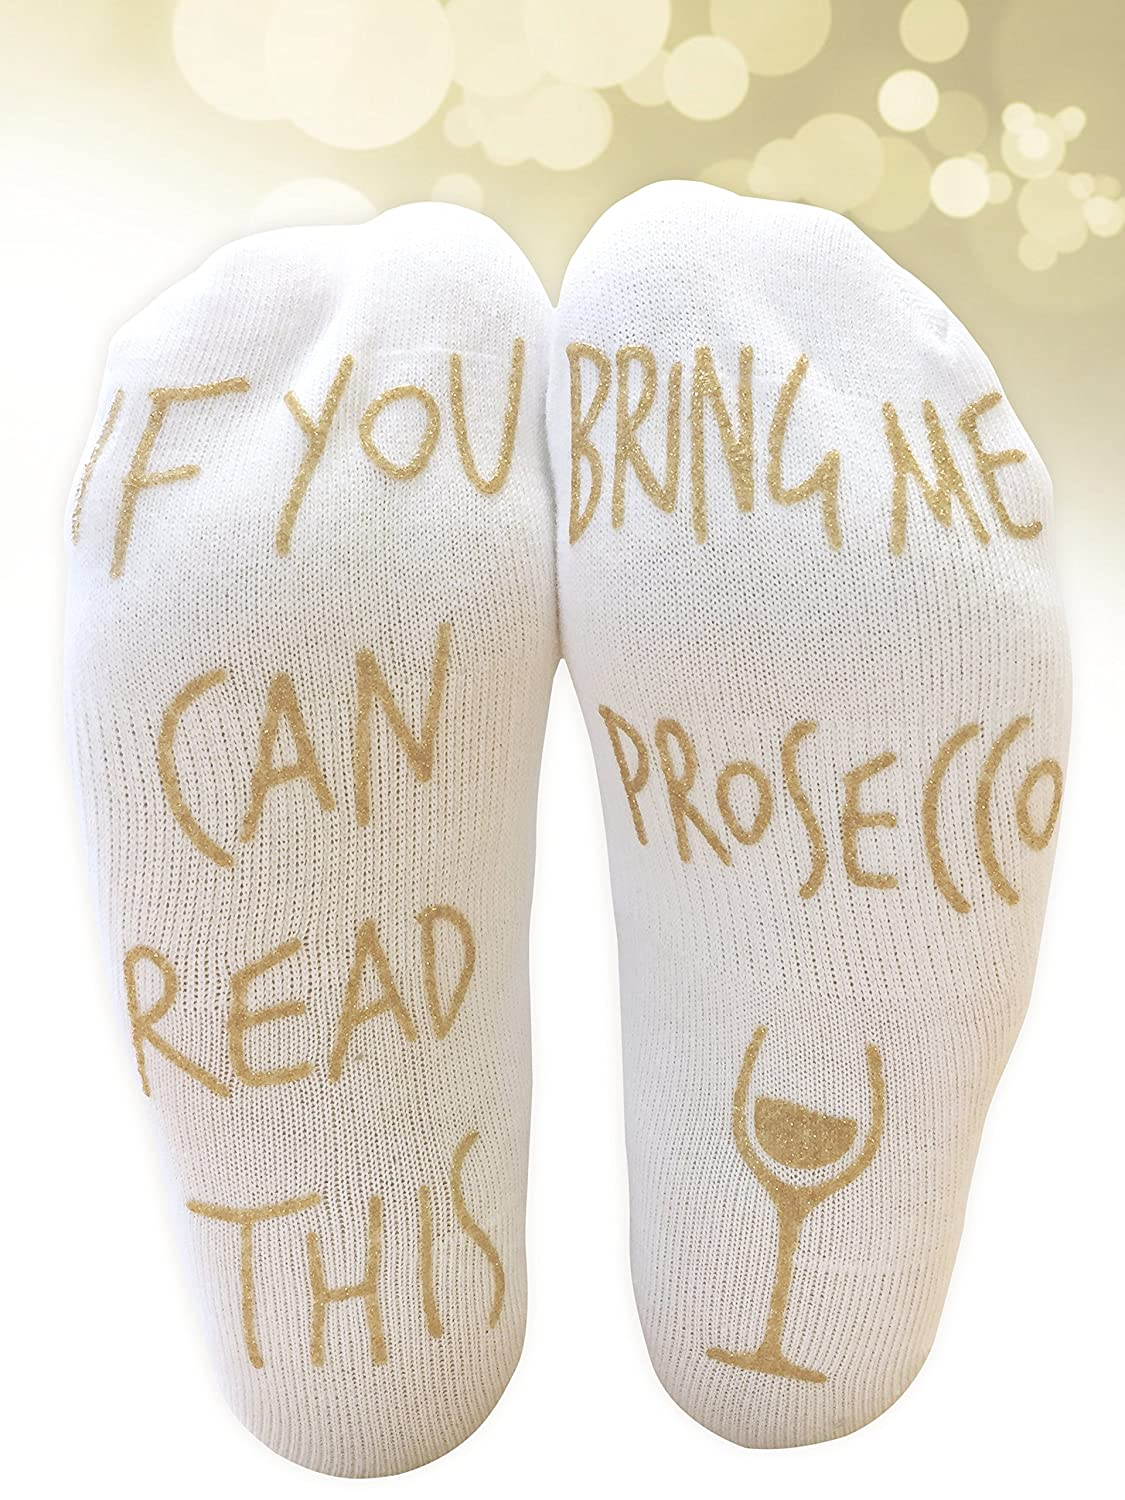 'If You Can Read This Bring Me Prosecco' Funny Ankle Socks Myprints